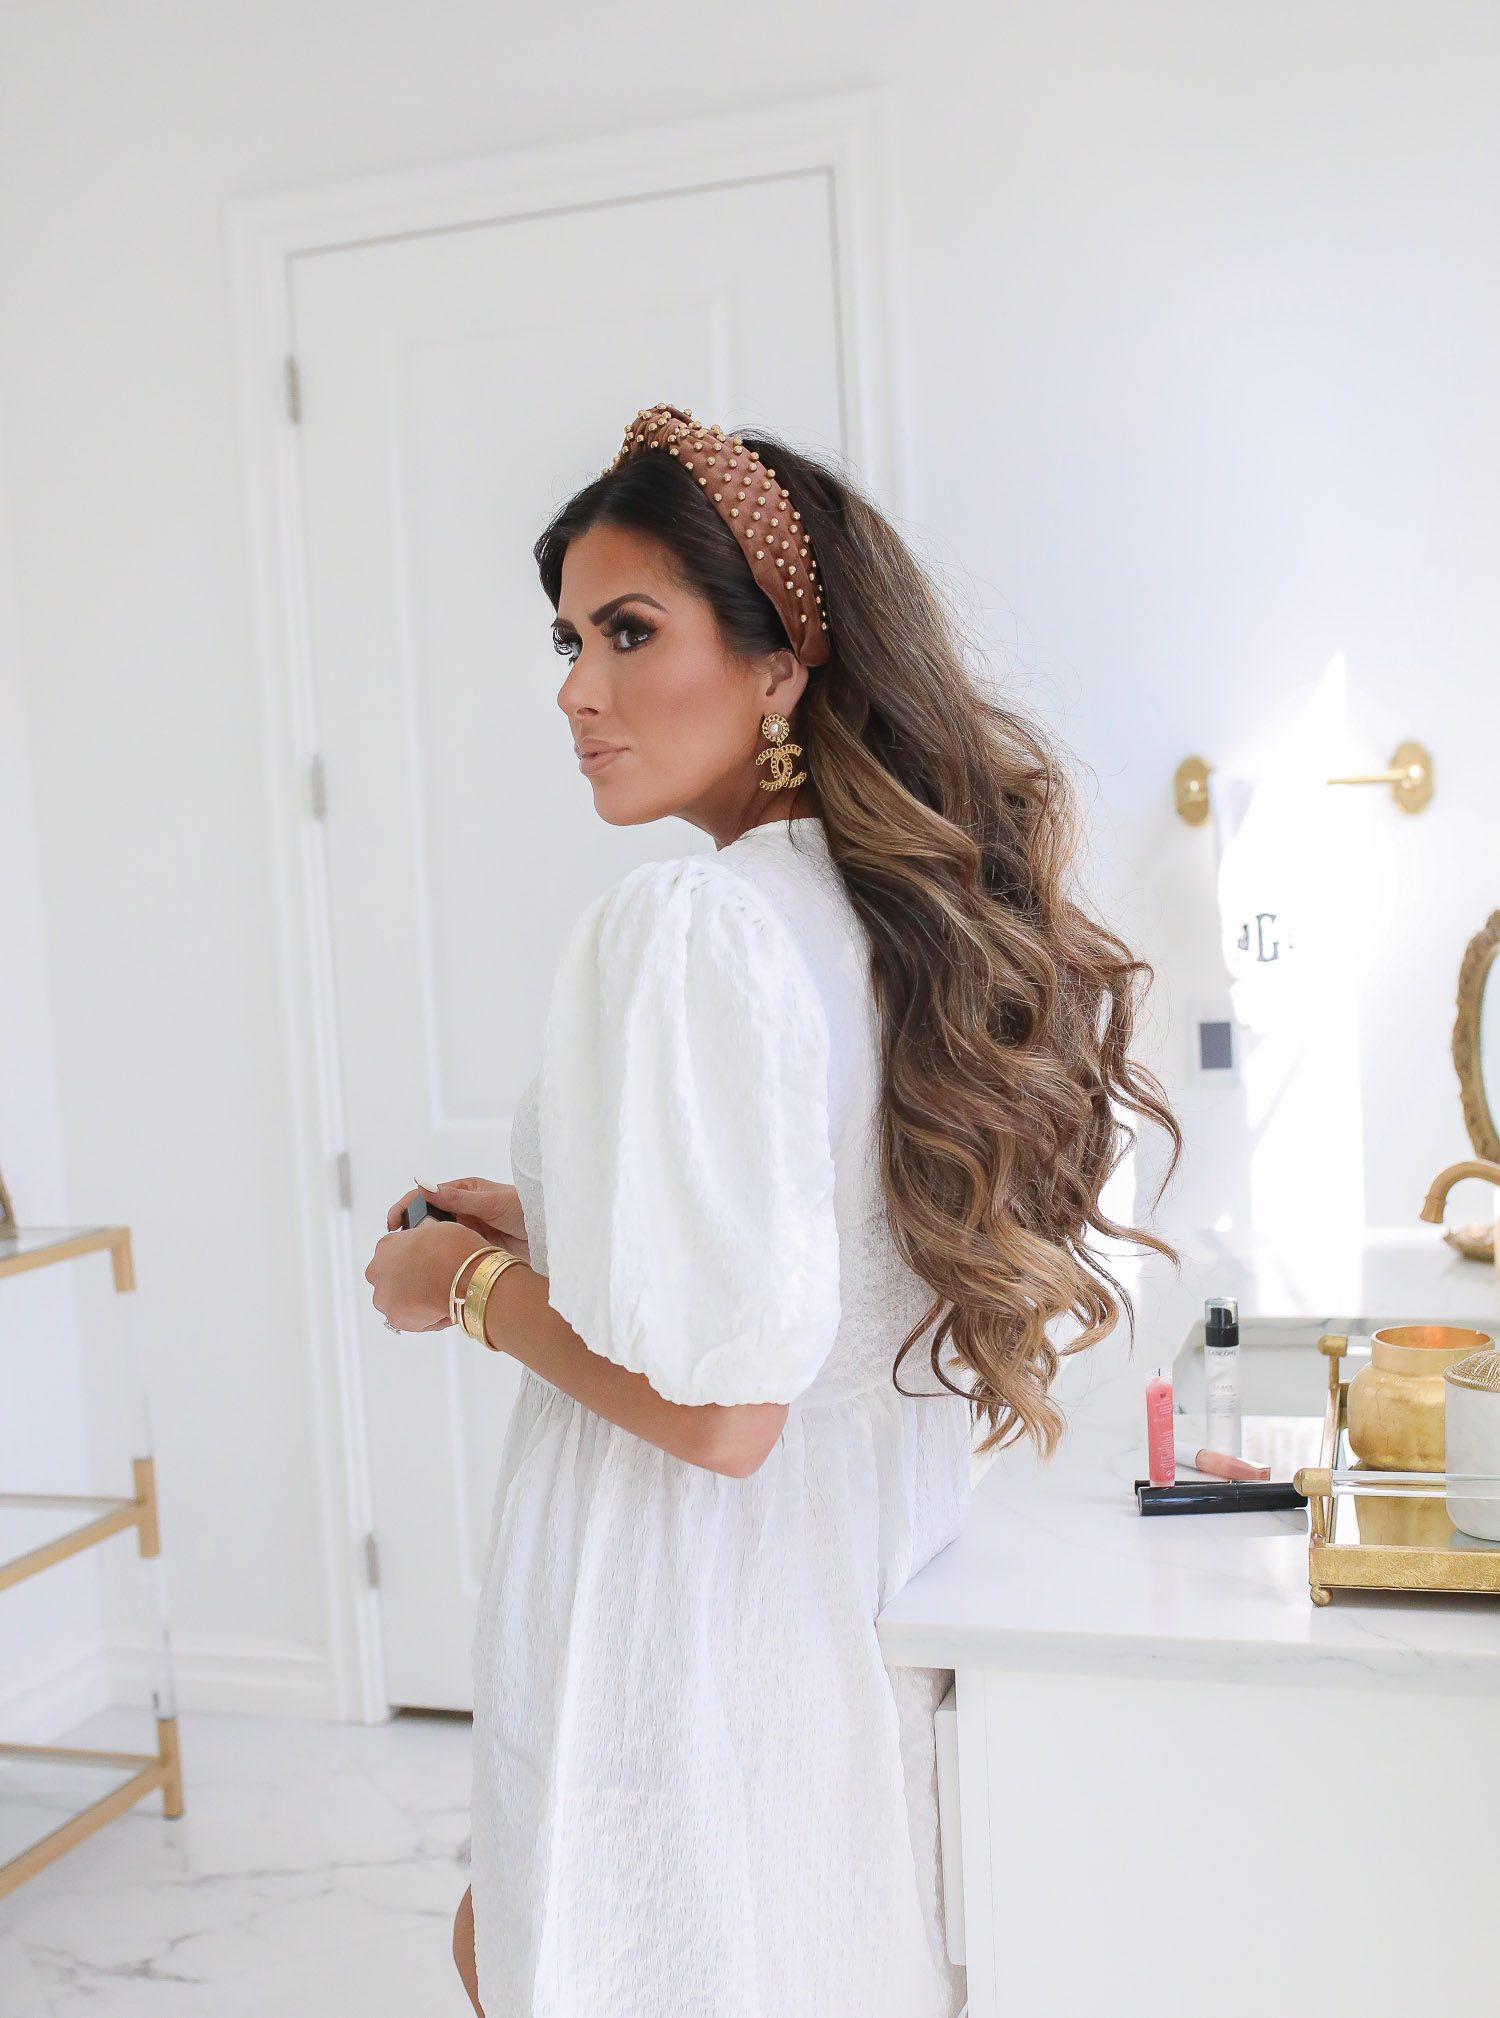 Lancôme Teint Idole Ultra Wear by popular US beauty blog, The Sweetest Thing: image of a woman wearing a white puff sleeve dress, Chanel earrings, and a pearl knot headband while holding a bottle of Lancome Teint Idole Ultra Wear foundation.